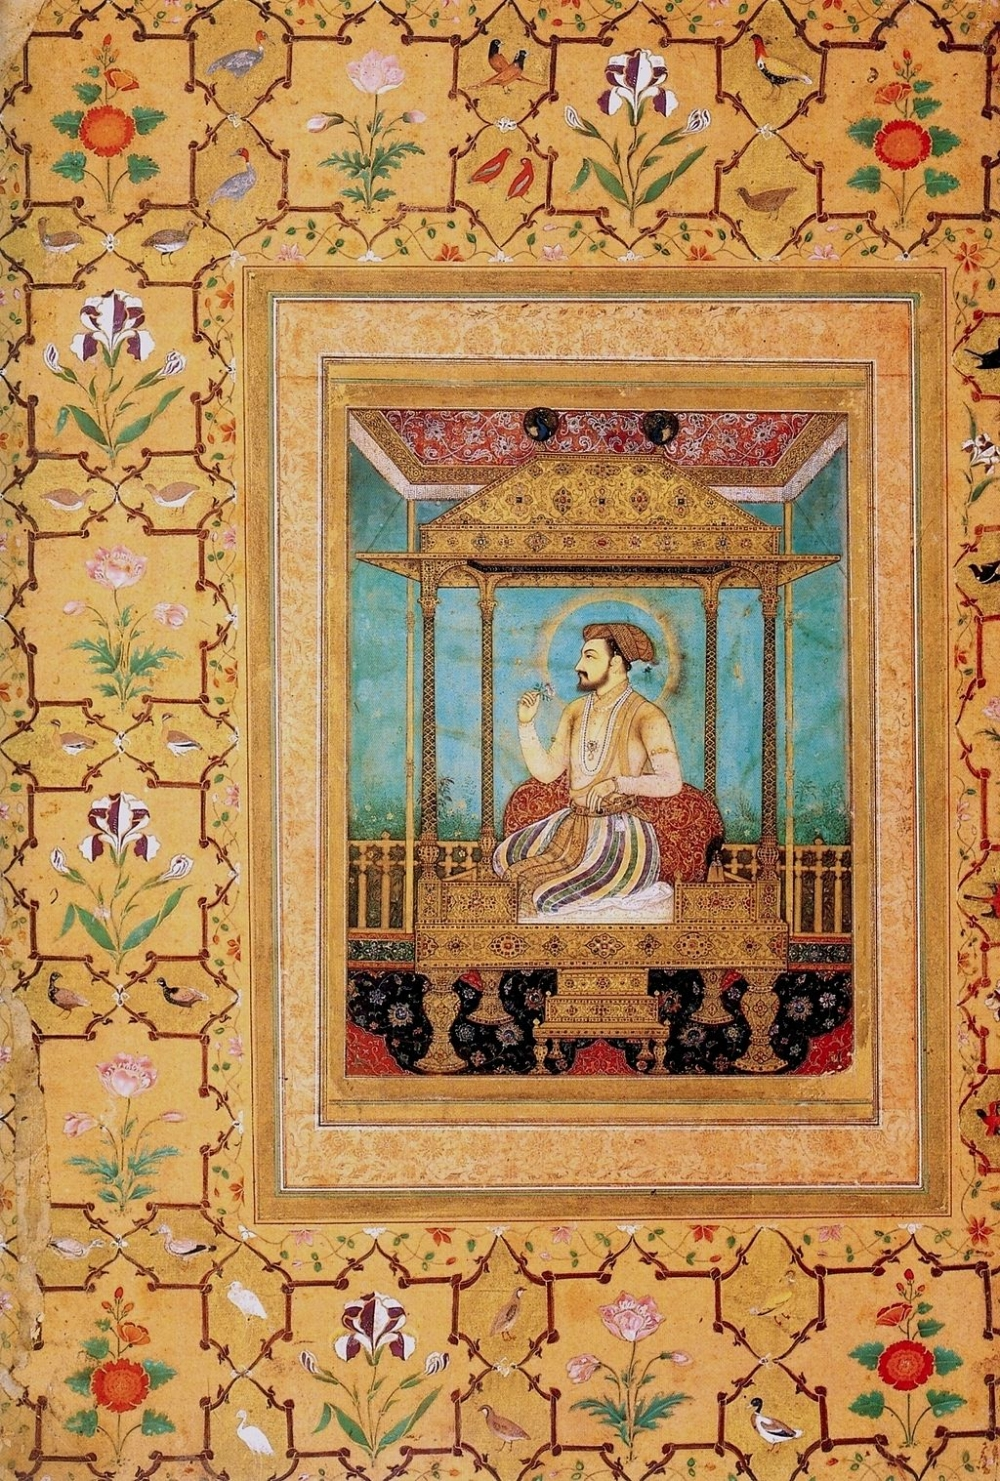 The Peacock Throne, Shah Jahan, Nadir Shah, Mughal Empire, Shahjahanabad